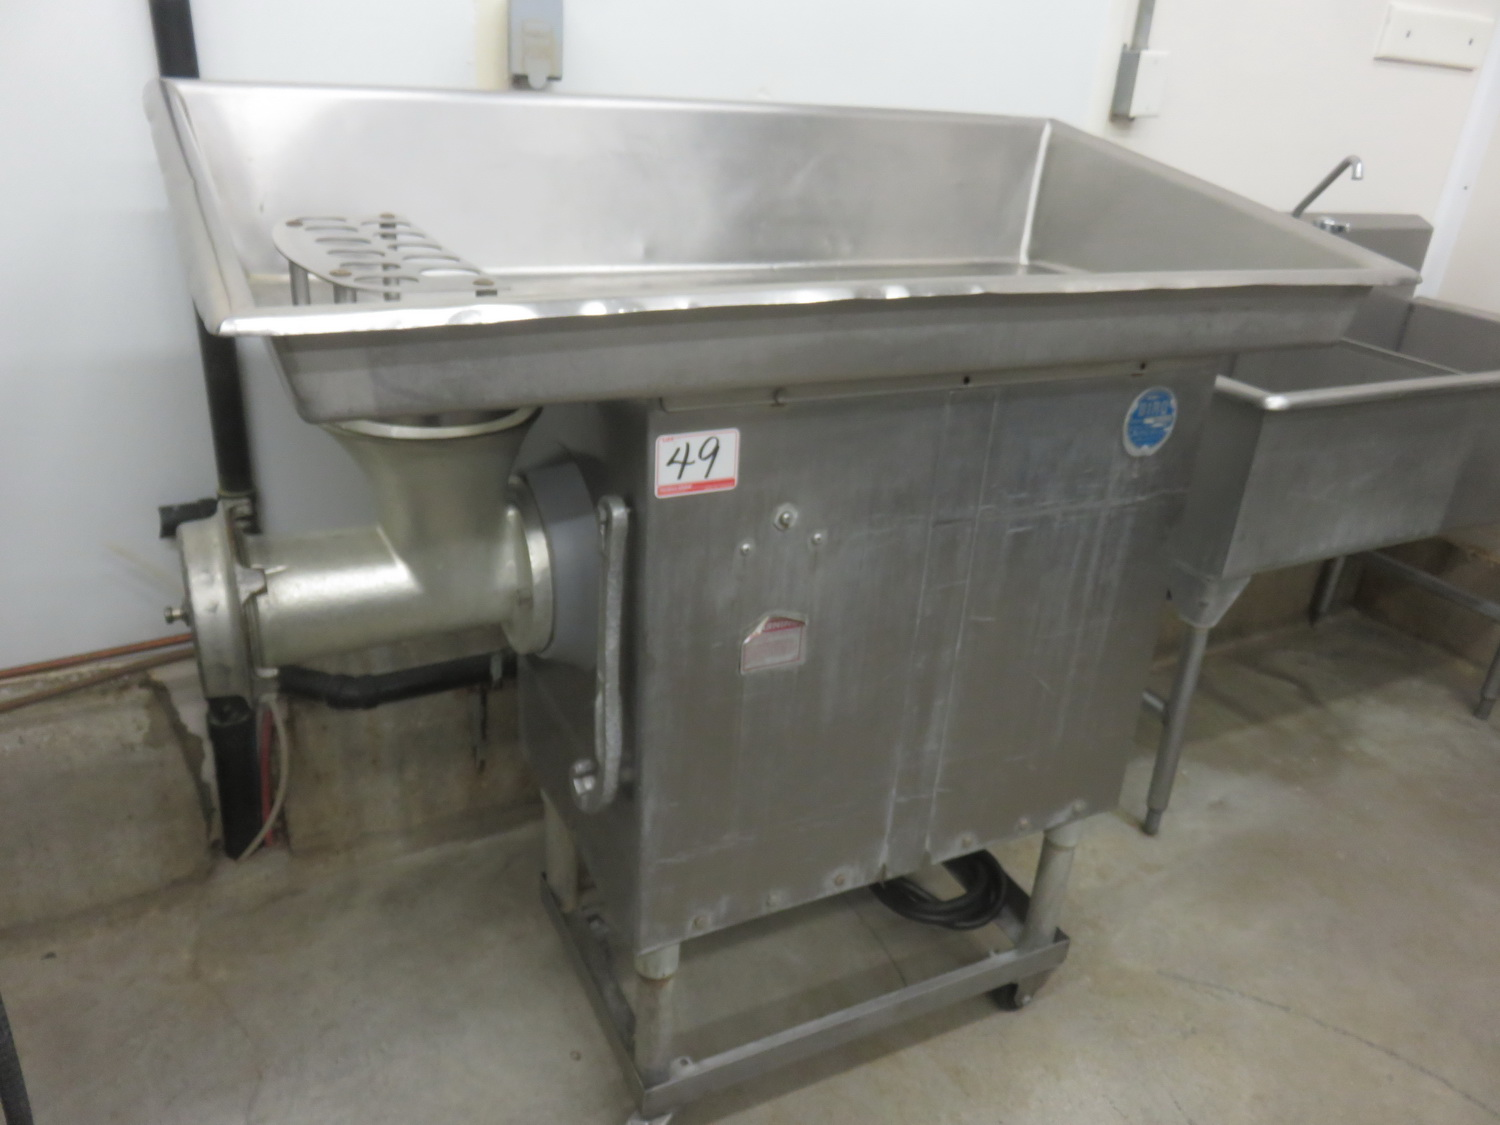 BIRO 7552 STAINLESS STEEL PAN FEED MEAT GRINDER (3-PHASE 208V)